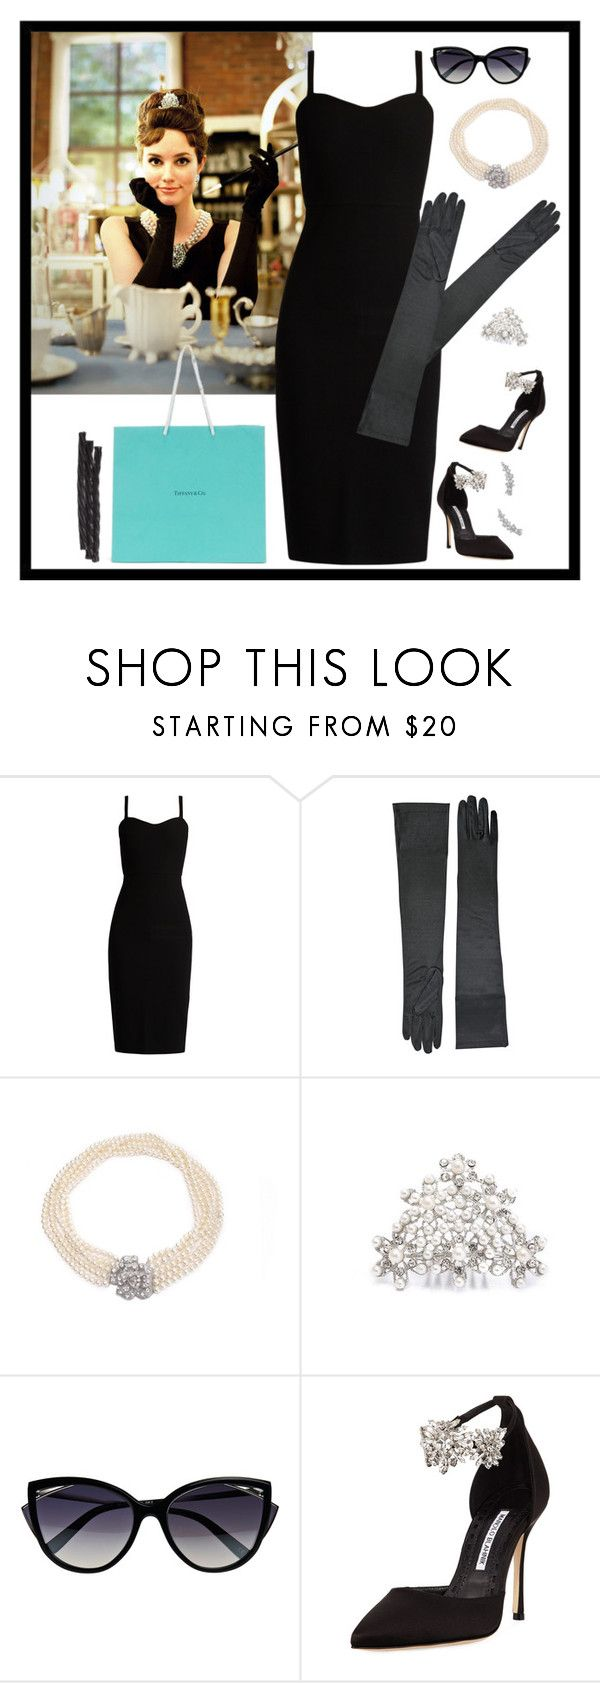 """""""Audrey Hepburn, Breakfast at Tiffany's Halloween costume"""" by dory-speaks-whale ❤ liked on Polyvore featuring MaxMara, Tiffany & Co., La Perla, Manolo Blahnik and Bloomingdale's"""